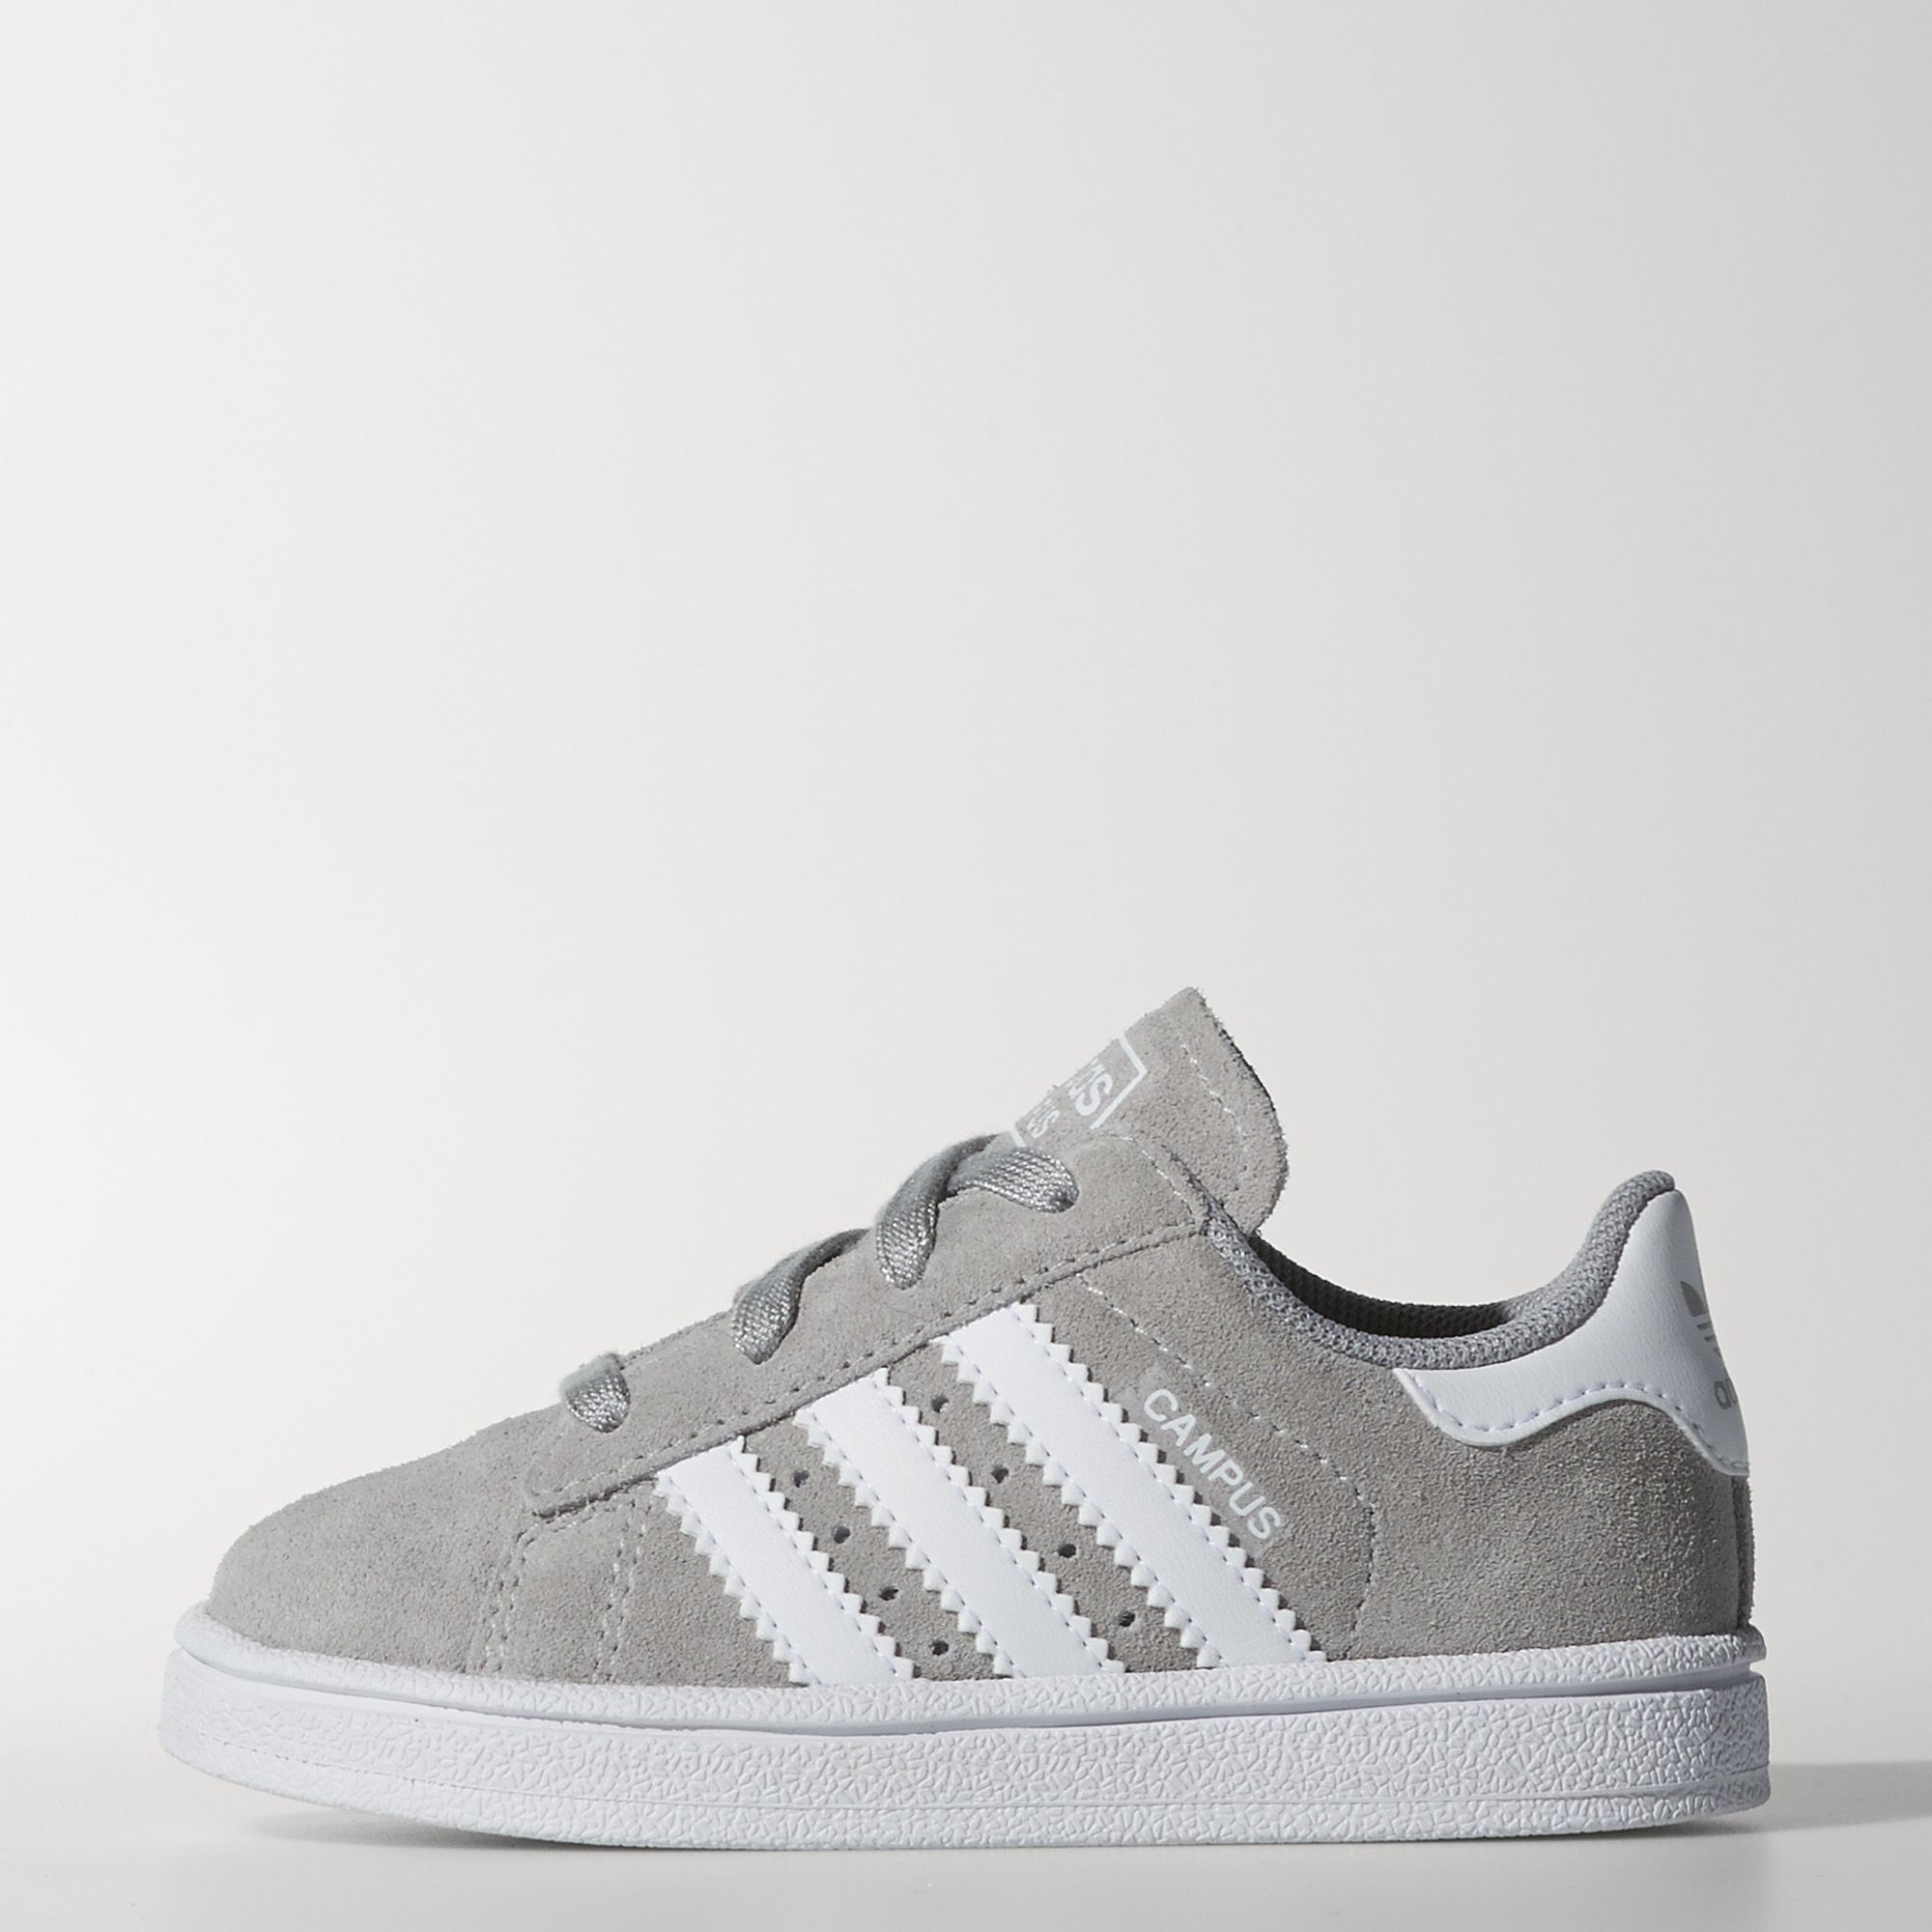 adidas Campus 2.0 Shoes Grey | adidas US | Cute baby shoes